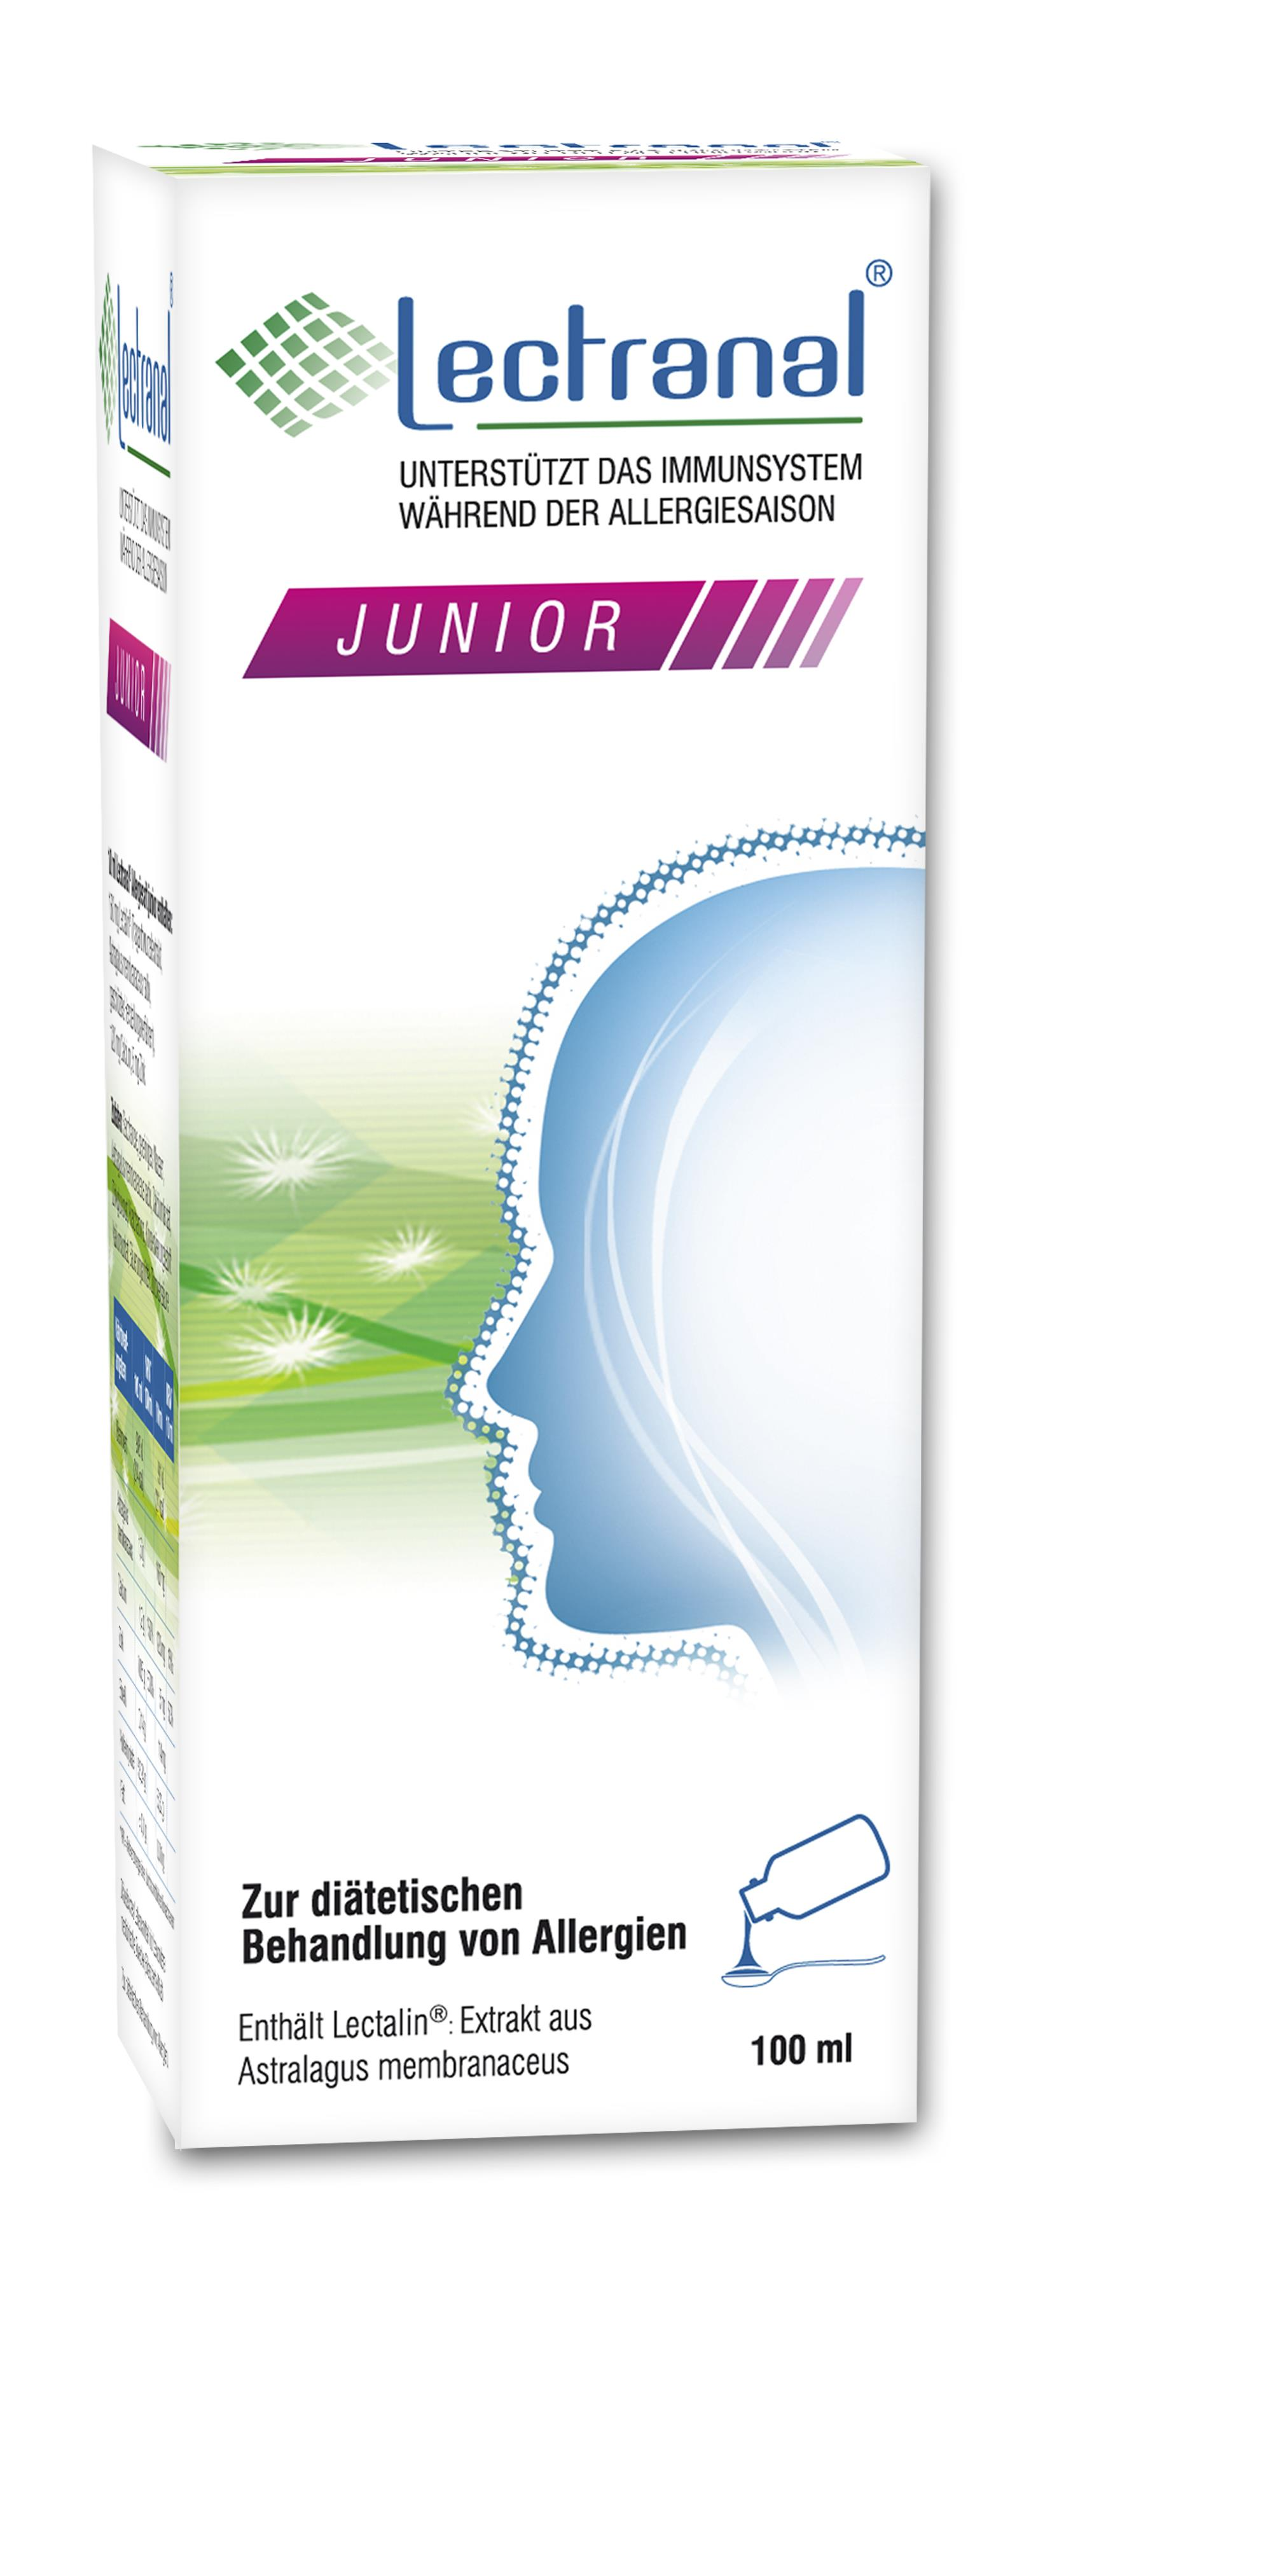 Lectranal® Allergiesaft junior 160mg/10ml